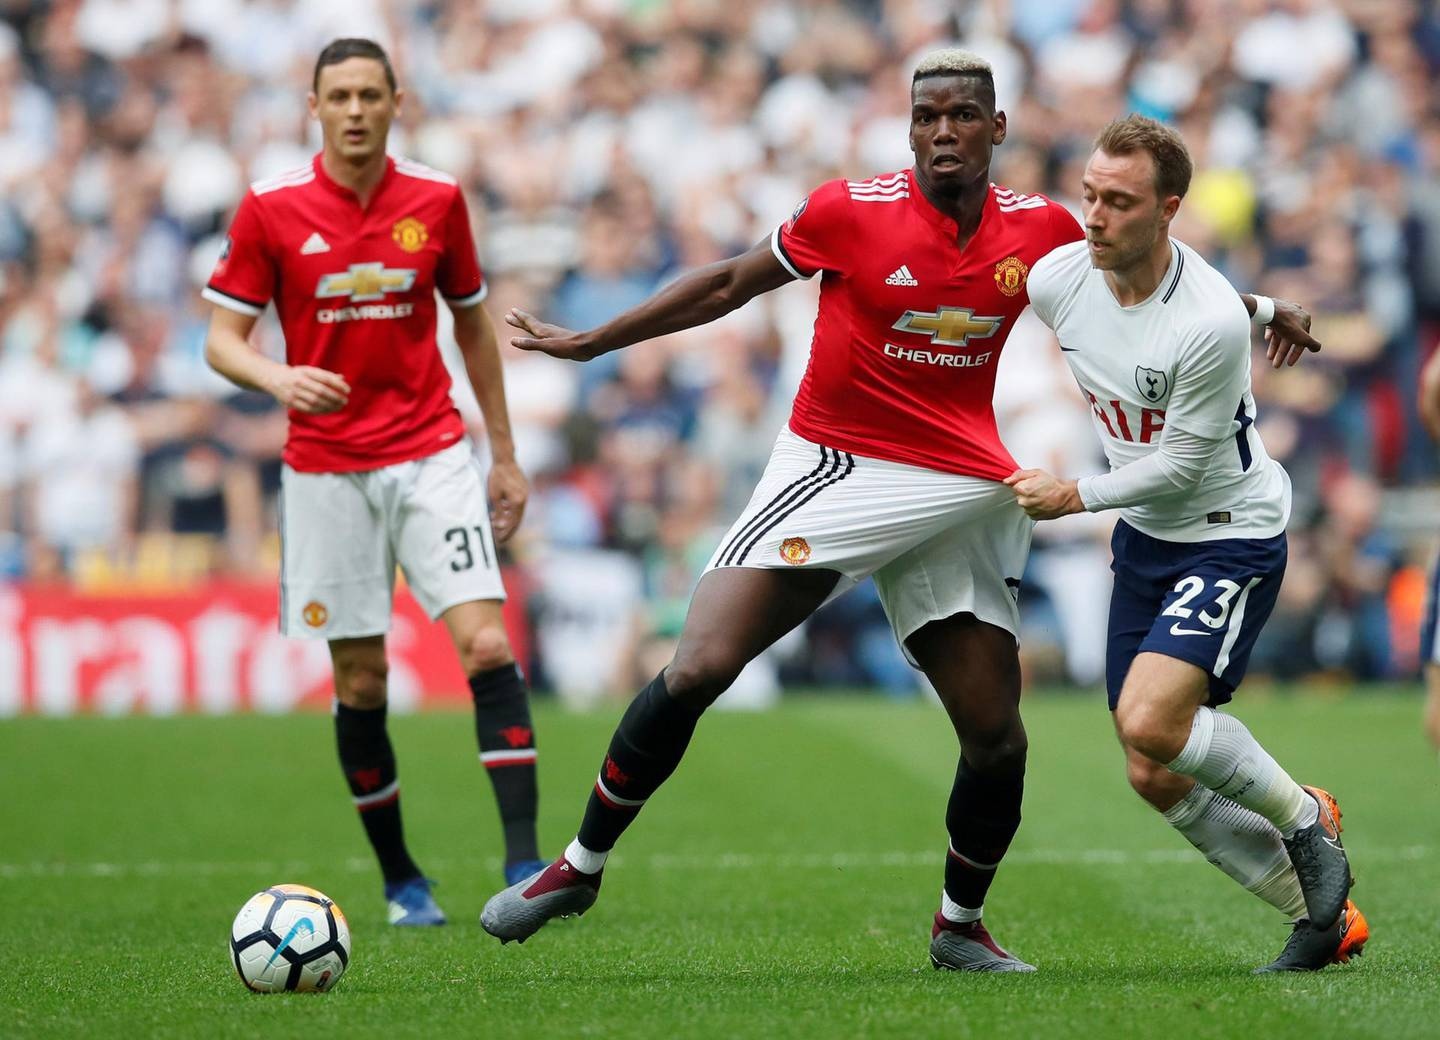 Soccer Football -  FA Cup Semi-Final - Manchester United v Tottenham Hotspur  - Wembley Stadium, London, Britain - April 21, 2018   Manchester United's Paul Pogba in action with Tottenham's Christian Eriksen   REUTERS/David Klein     TPX IMAGES OF THE DAY